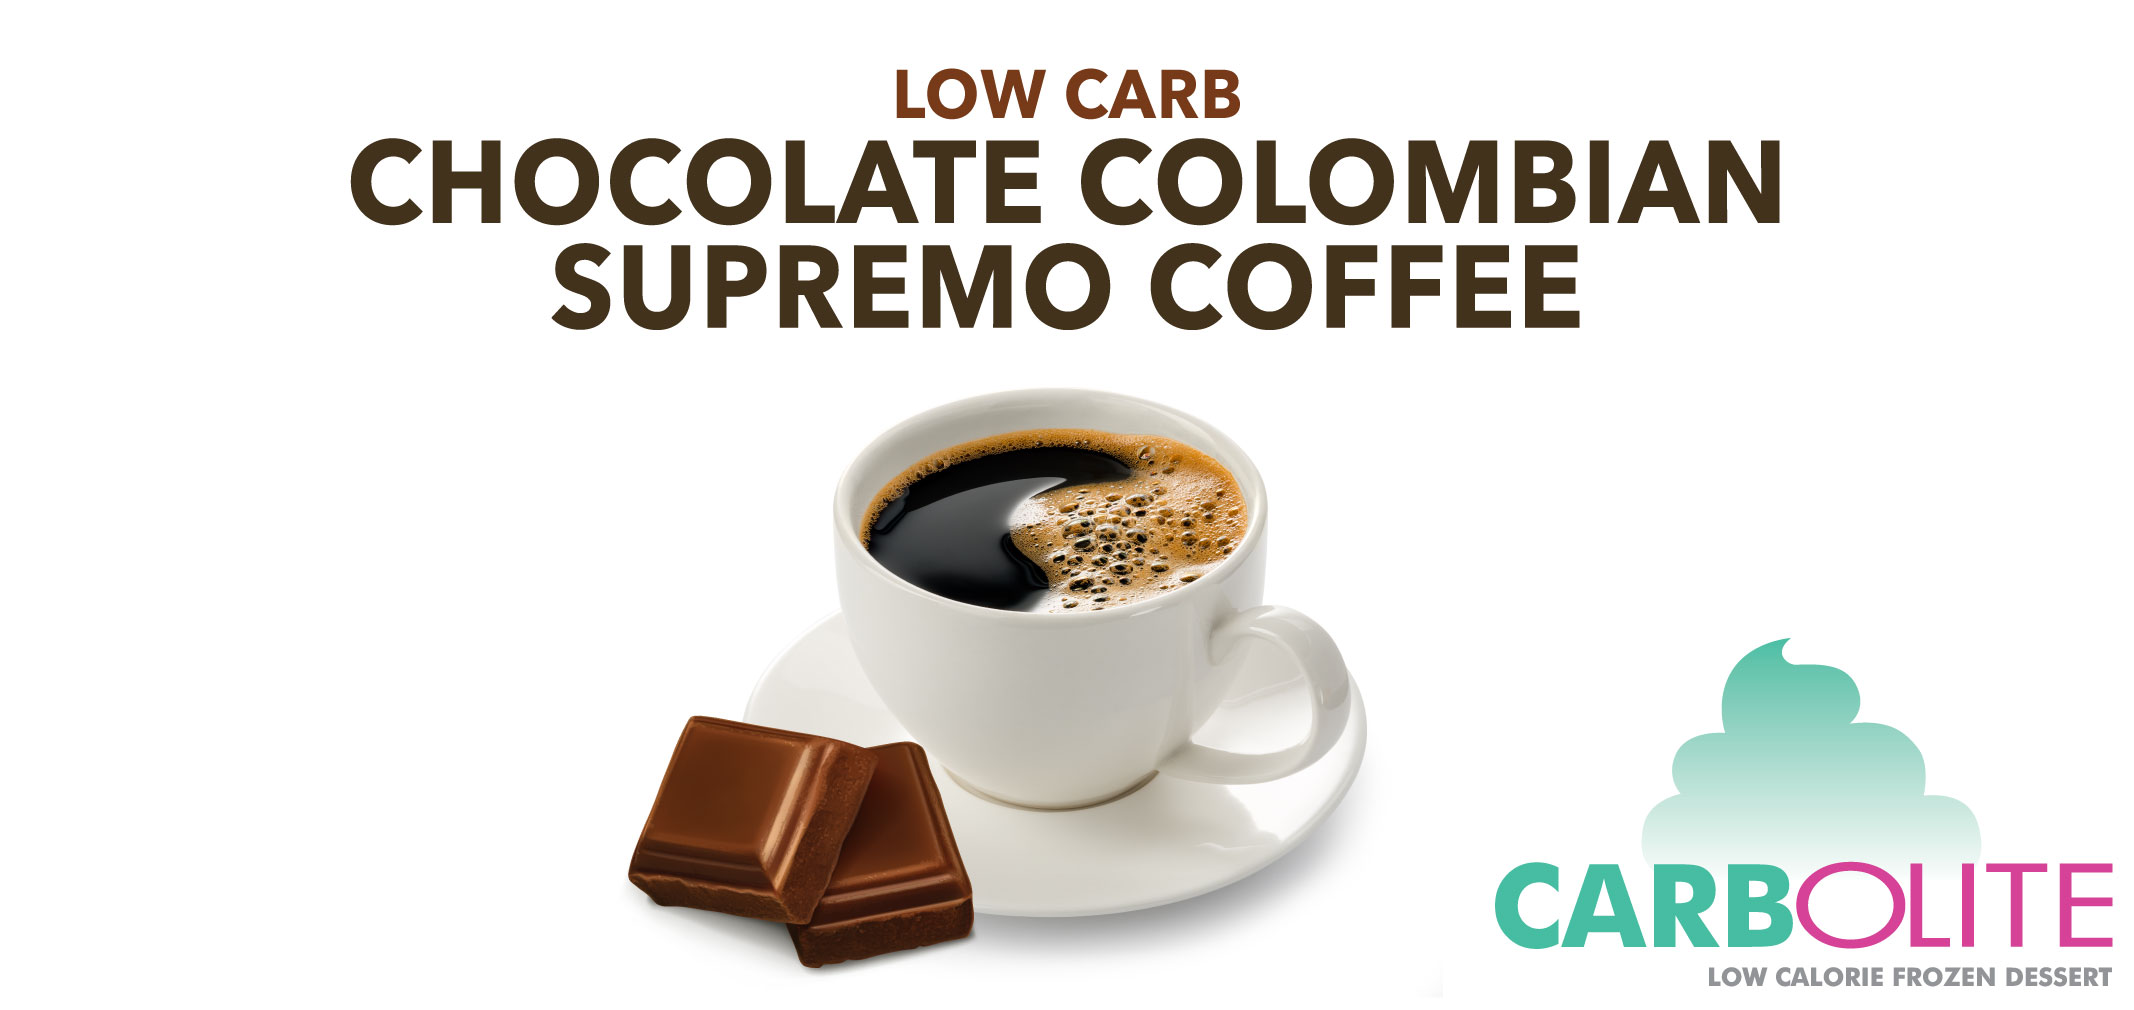 carbolite low carb no sugar added chocolate colombian supremo coffee label image